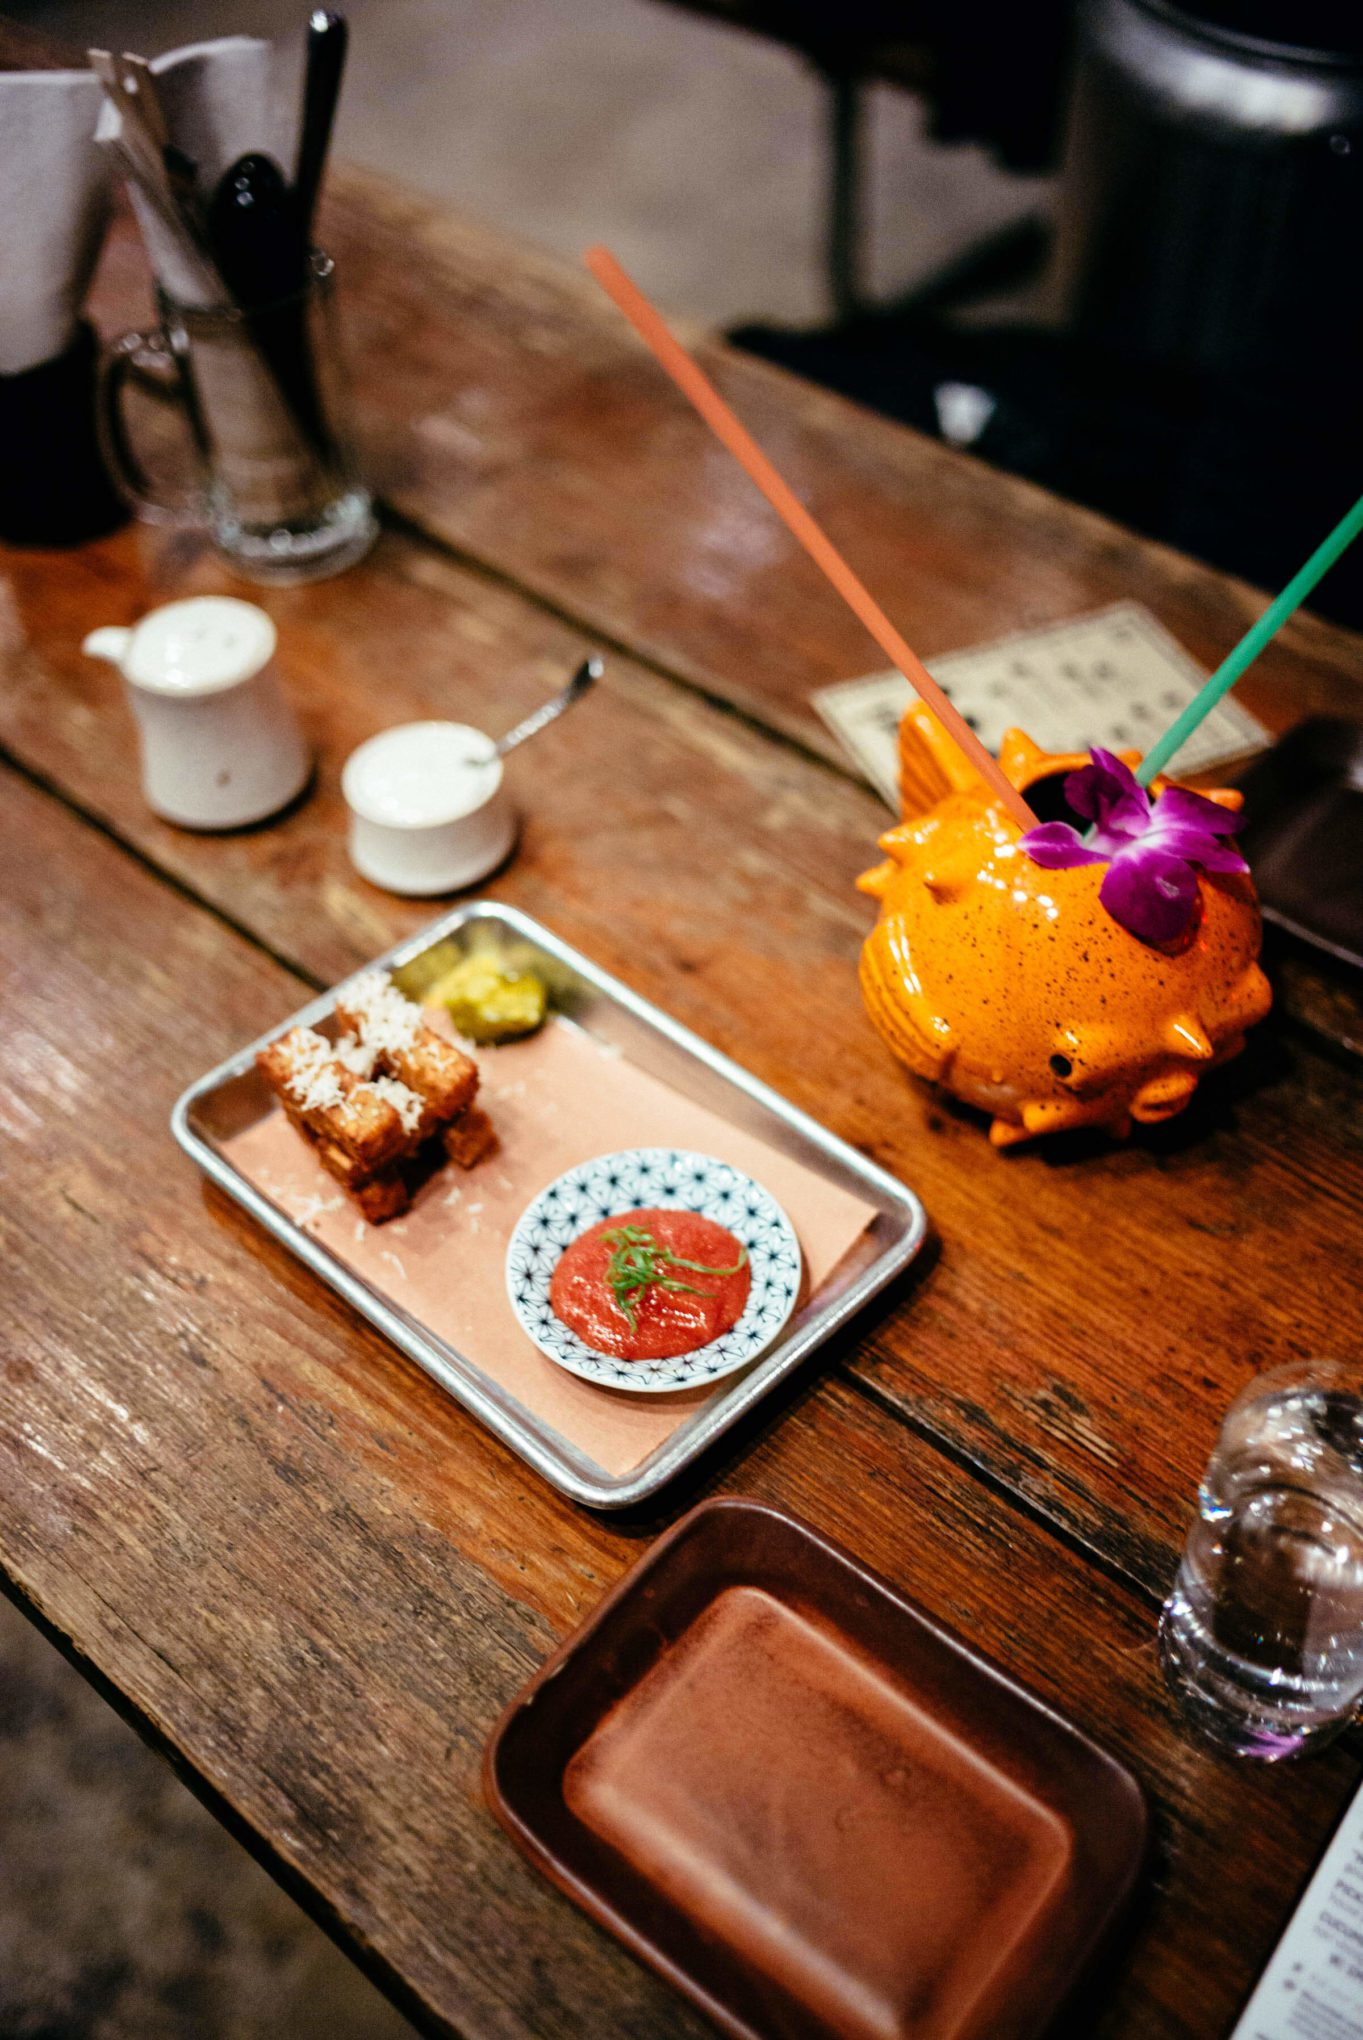 Have a dinner with The Taste Edit at kemuri-tatsuya the best Izakaya in Austin - try the HMentaiko N Tots, house tots, tallow, fresh horseradish, salted-roe ketchup